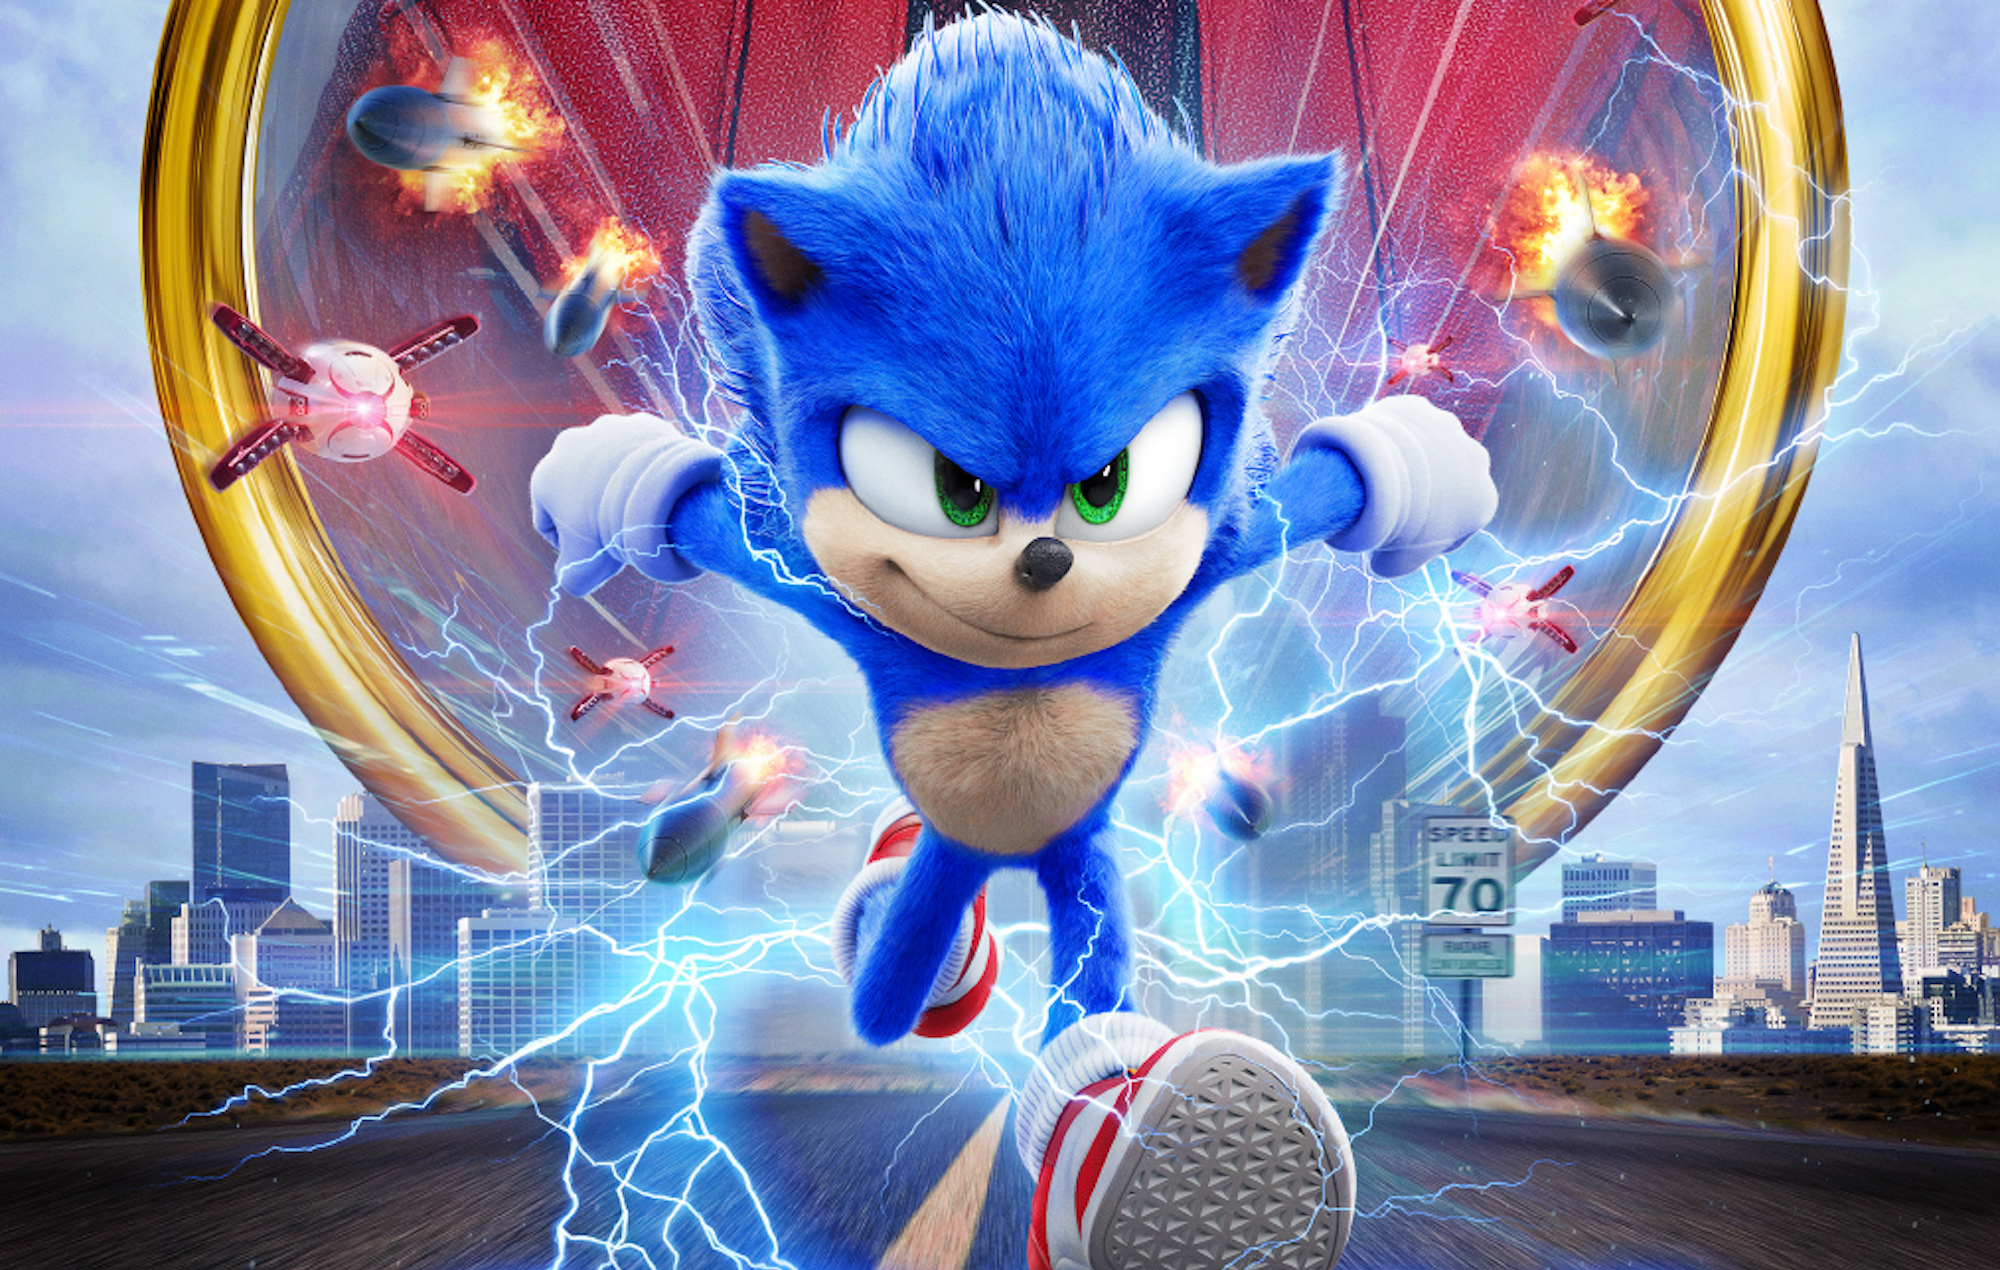 Sonic The Hedgehog Director Opens Up About Anxiety Over Redesign